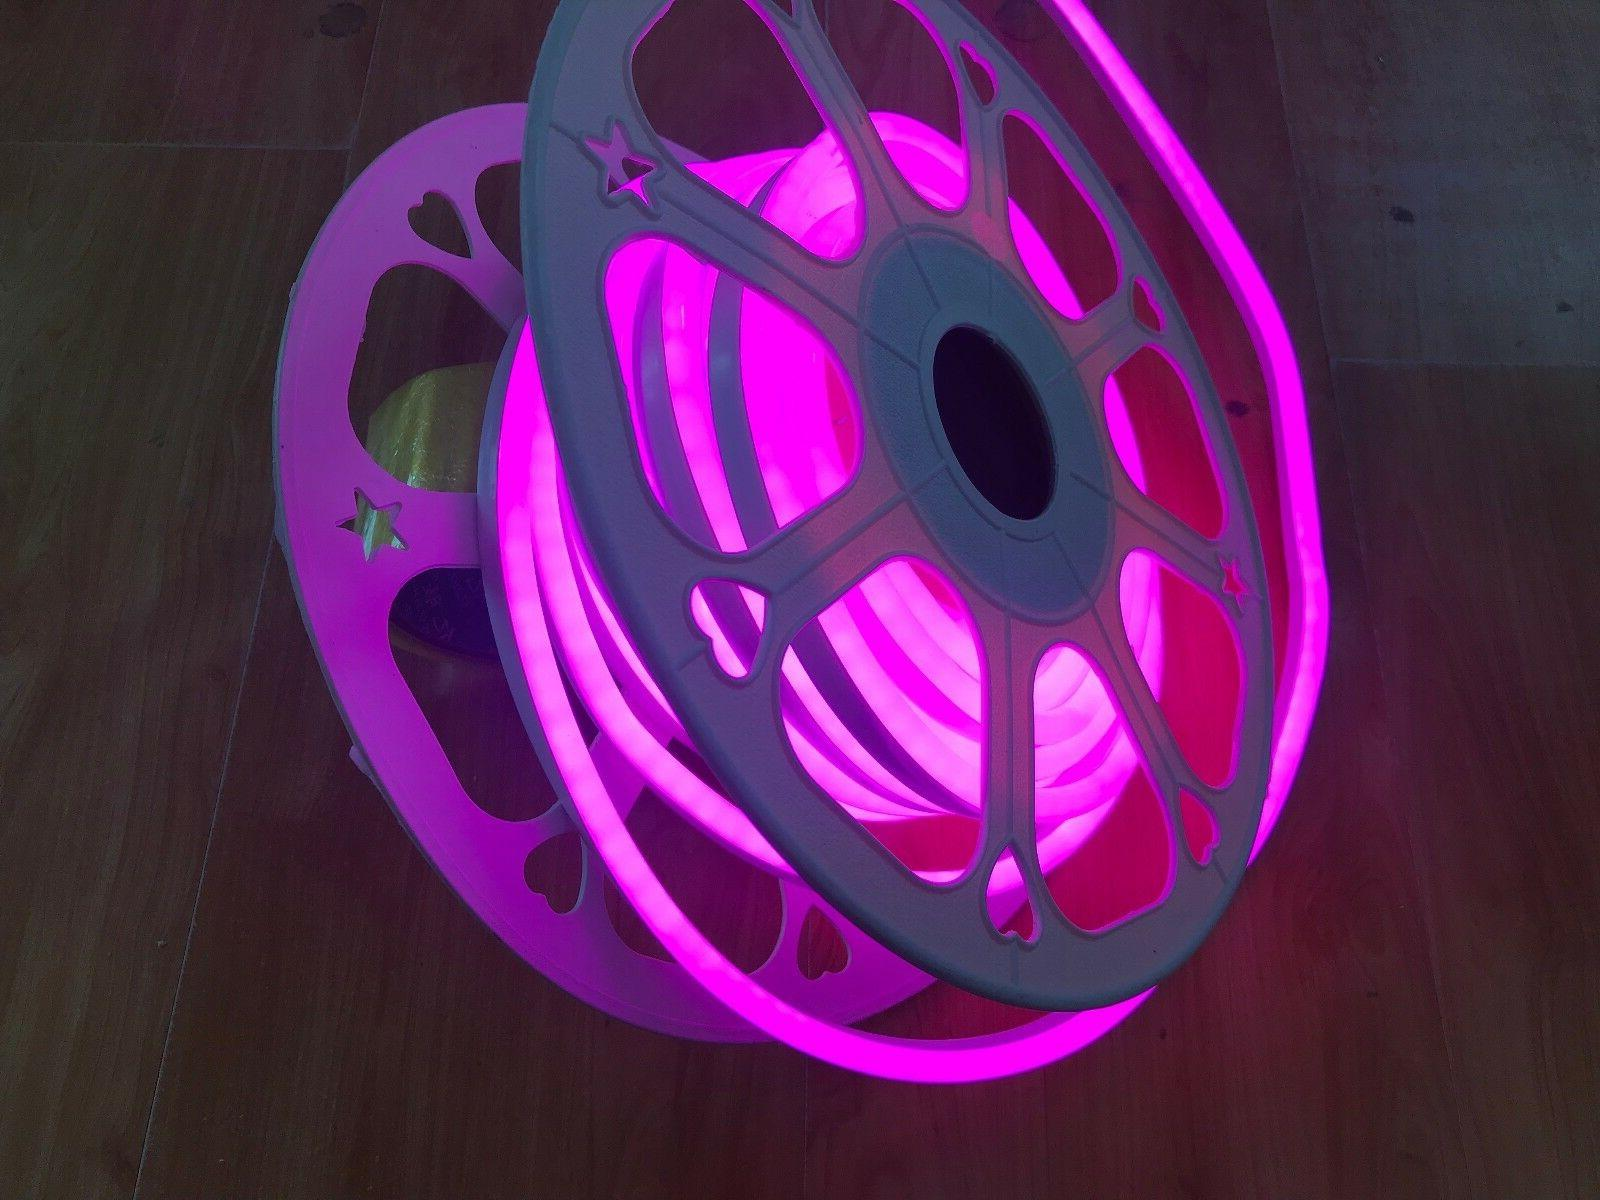 Flex LED Neon Rope Light Home Wedding Commercial